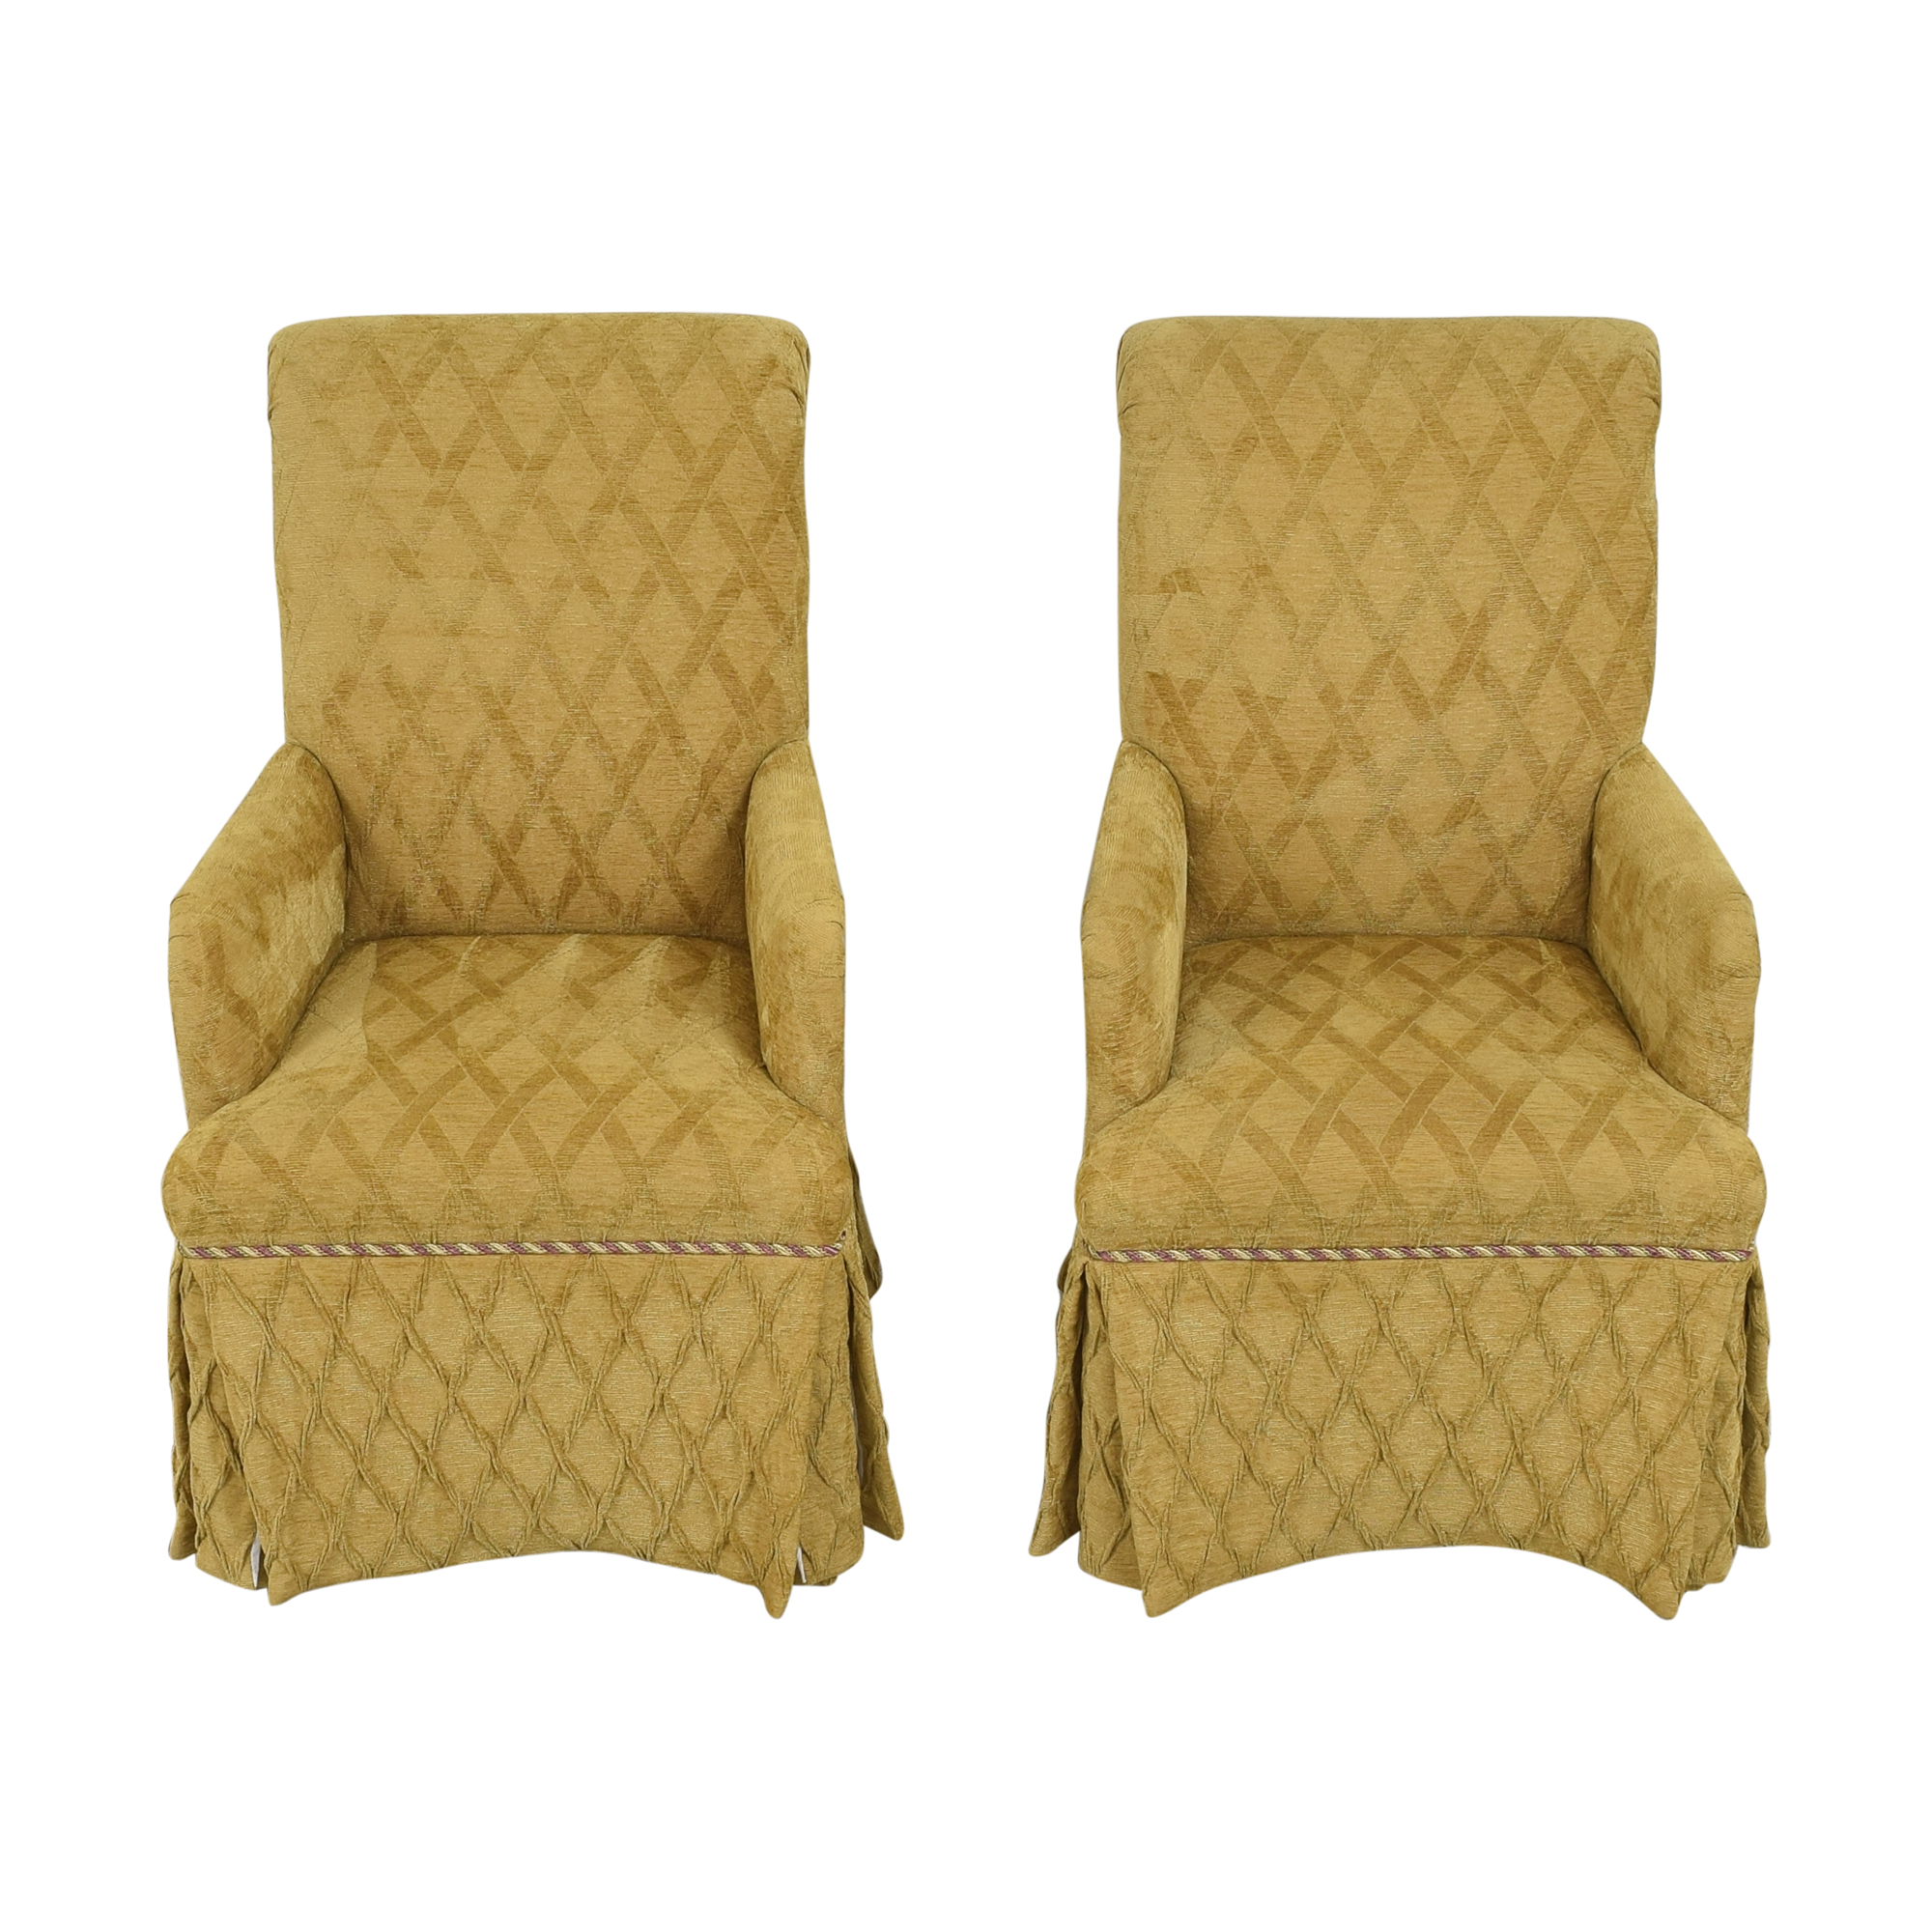 Charles Stewart Company Charles Stewart Company Skirted Dining Arm Chairs ma